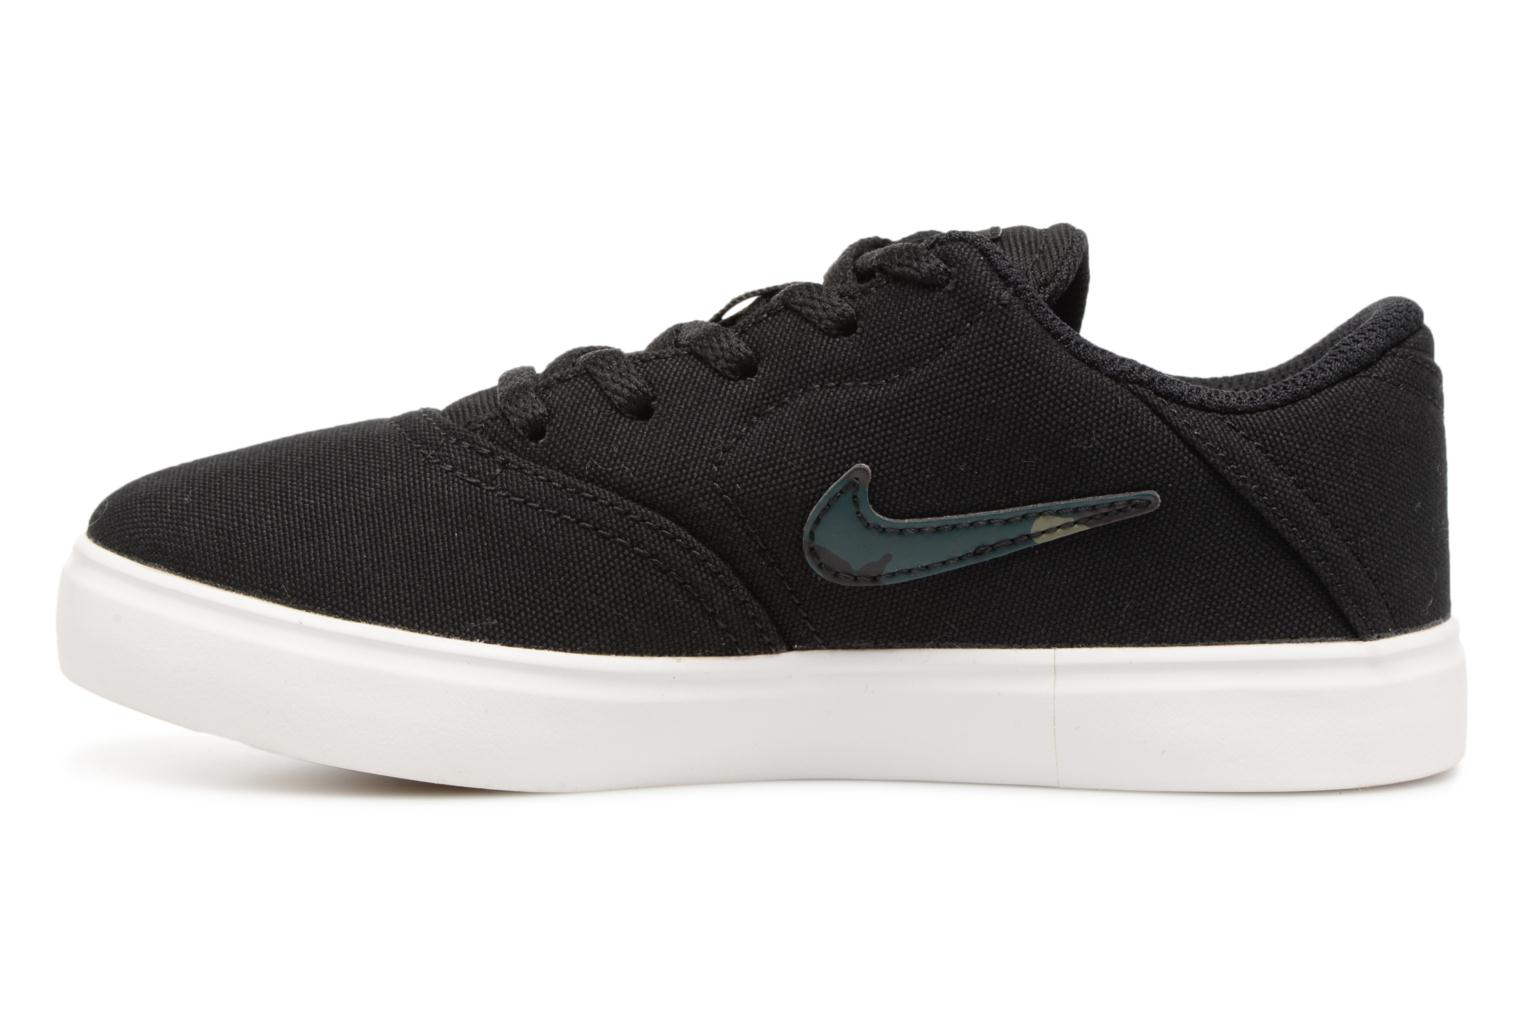 Black/white Nike Nike Sb Check Cnvs (Ps) (Noir)